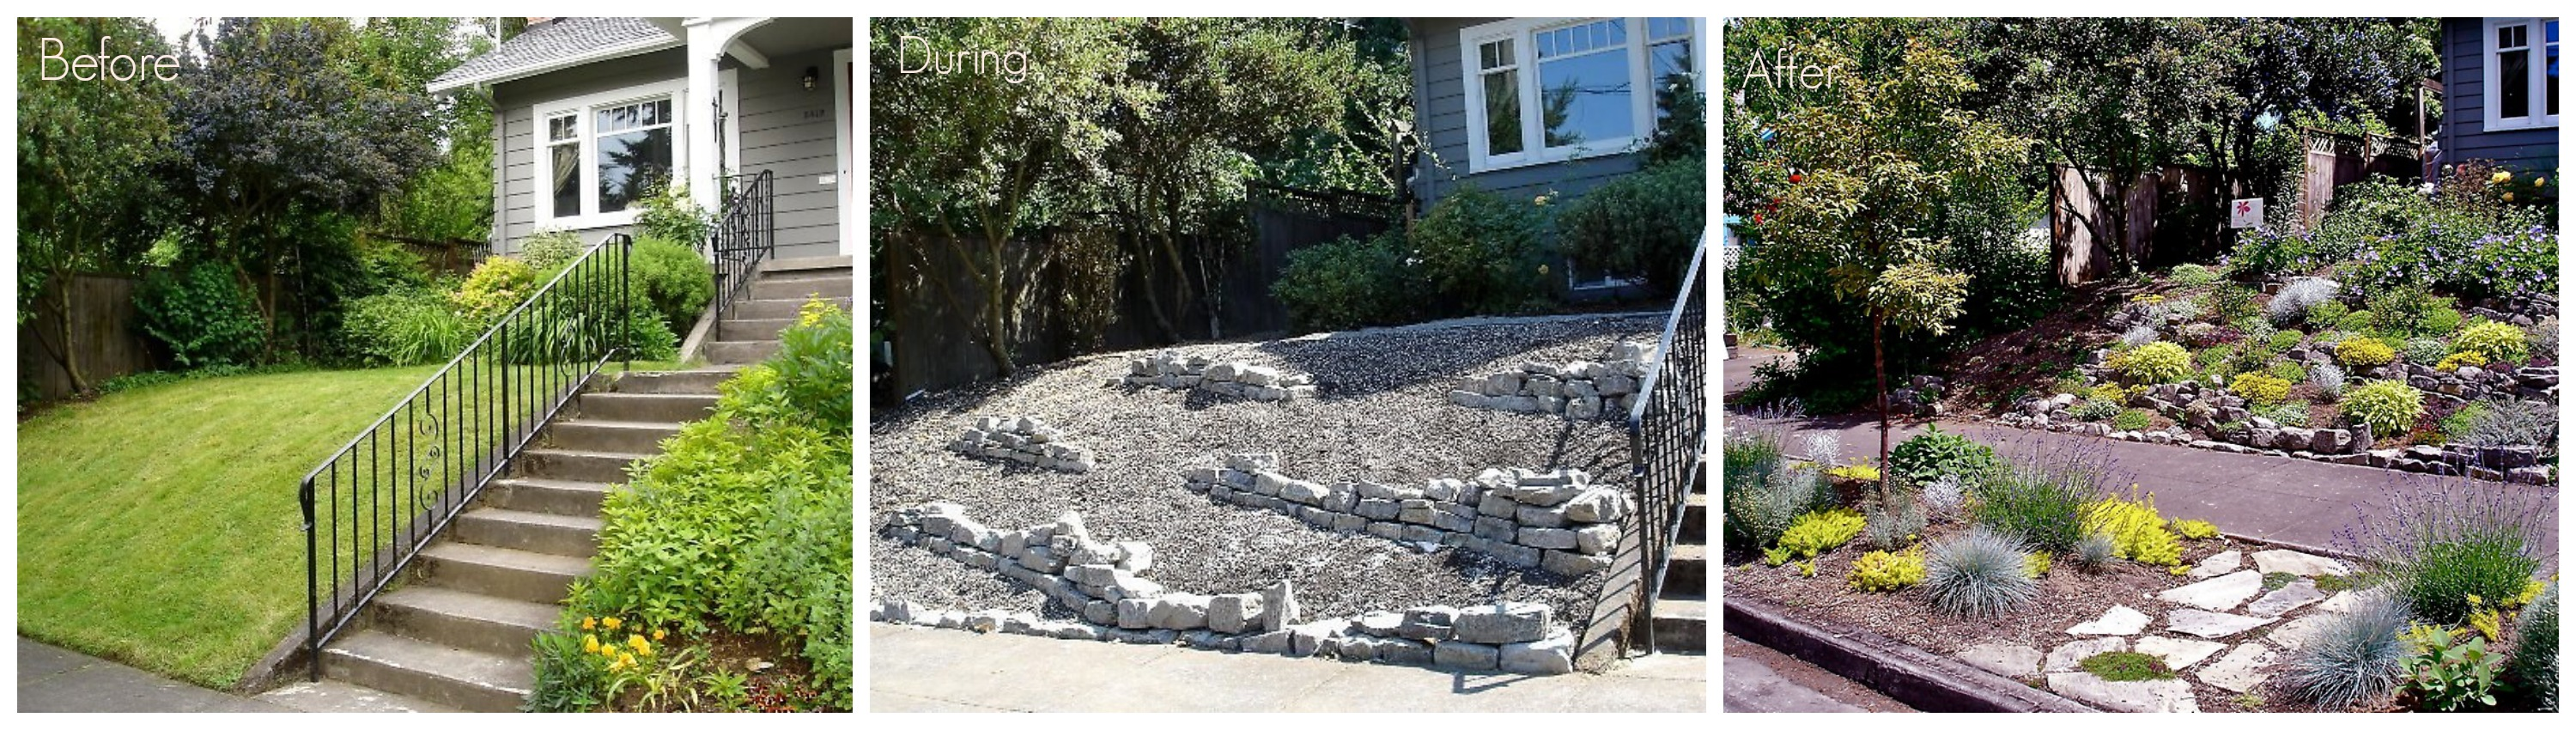 301 moved permanently for Back garden designs before and after